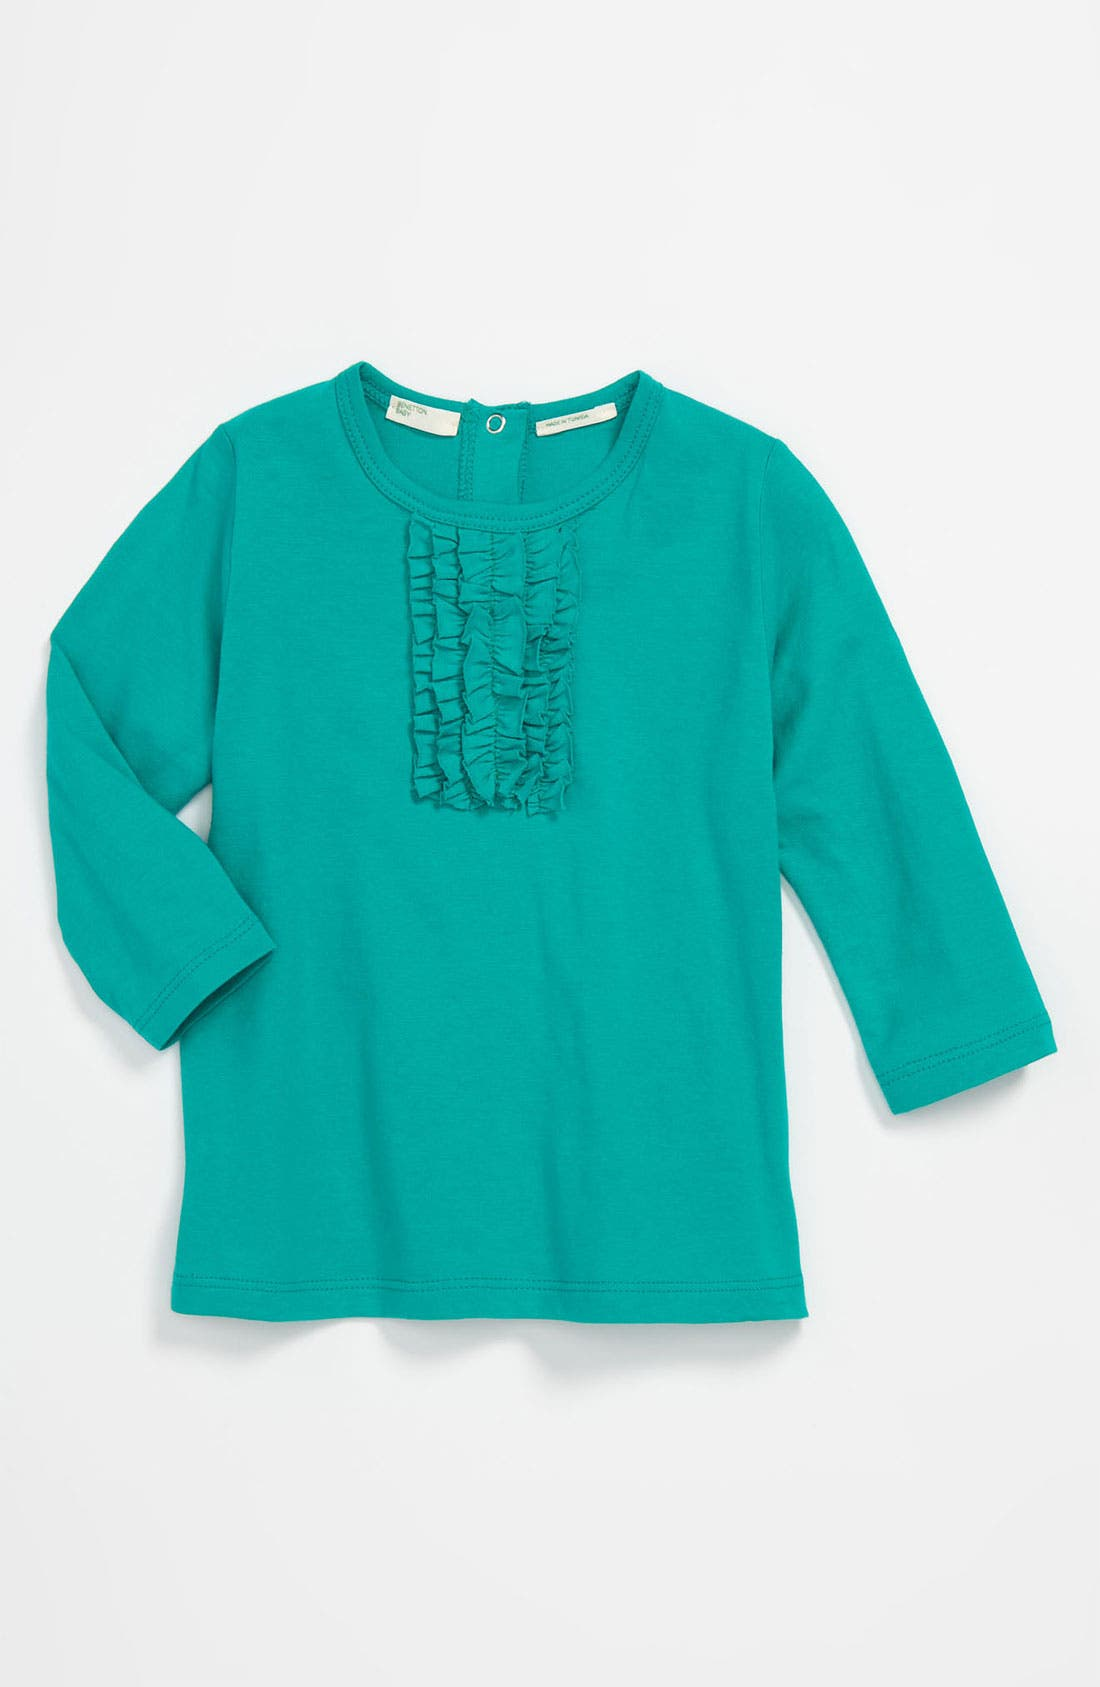 Main Image - United Colors of Benetton Kids Tee (Infant)